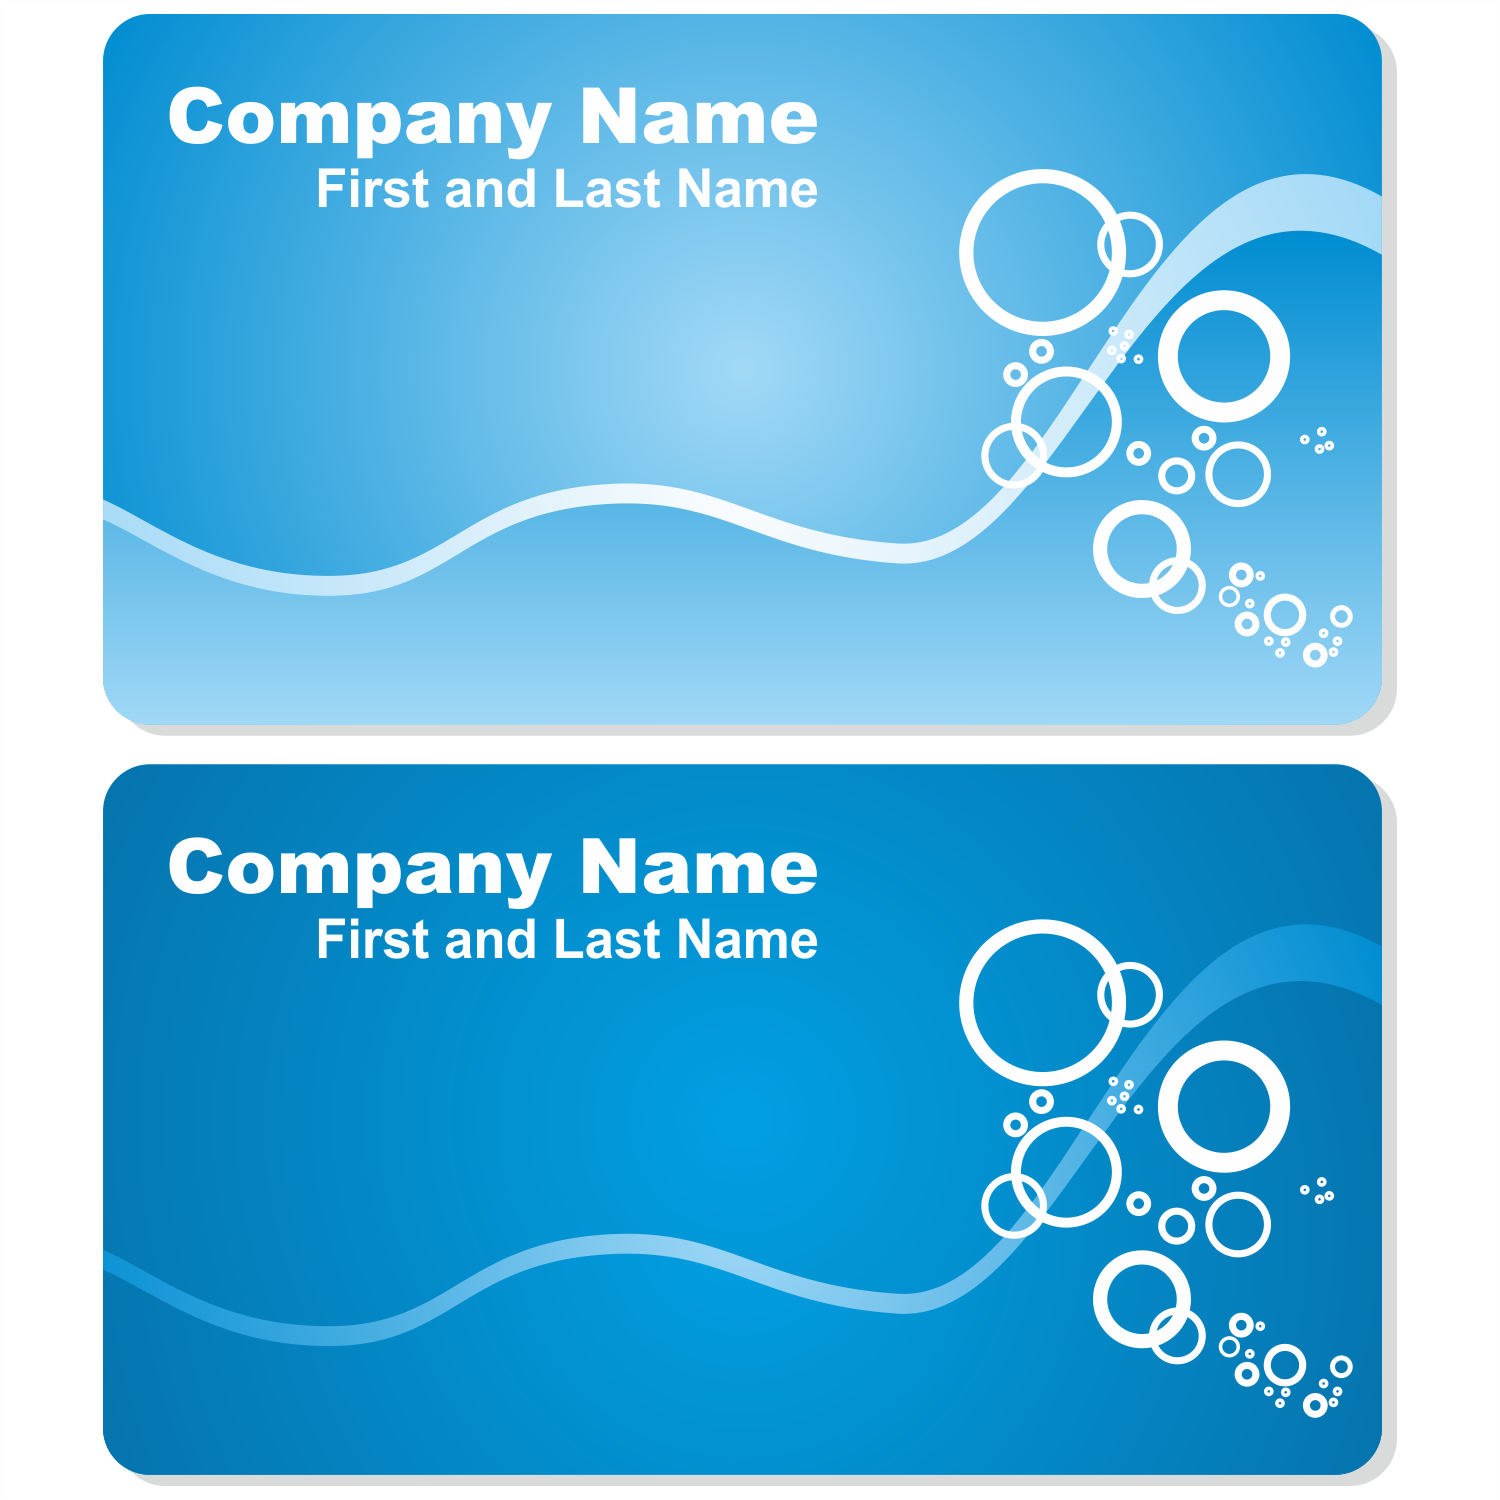 Free online business card template business card sample free online business card template colourmoves